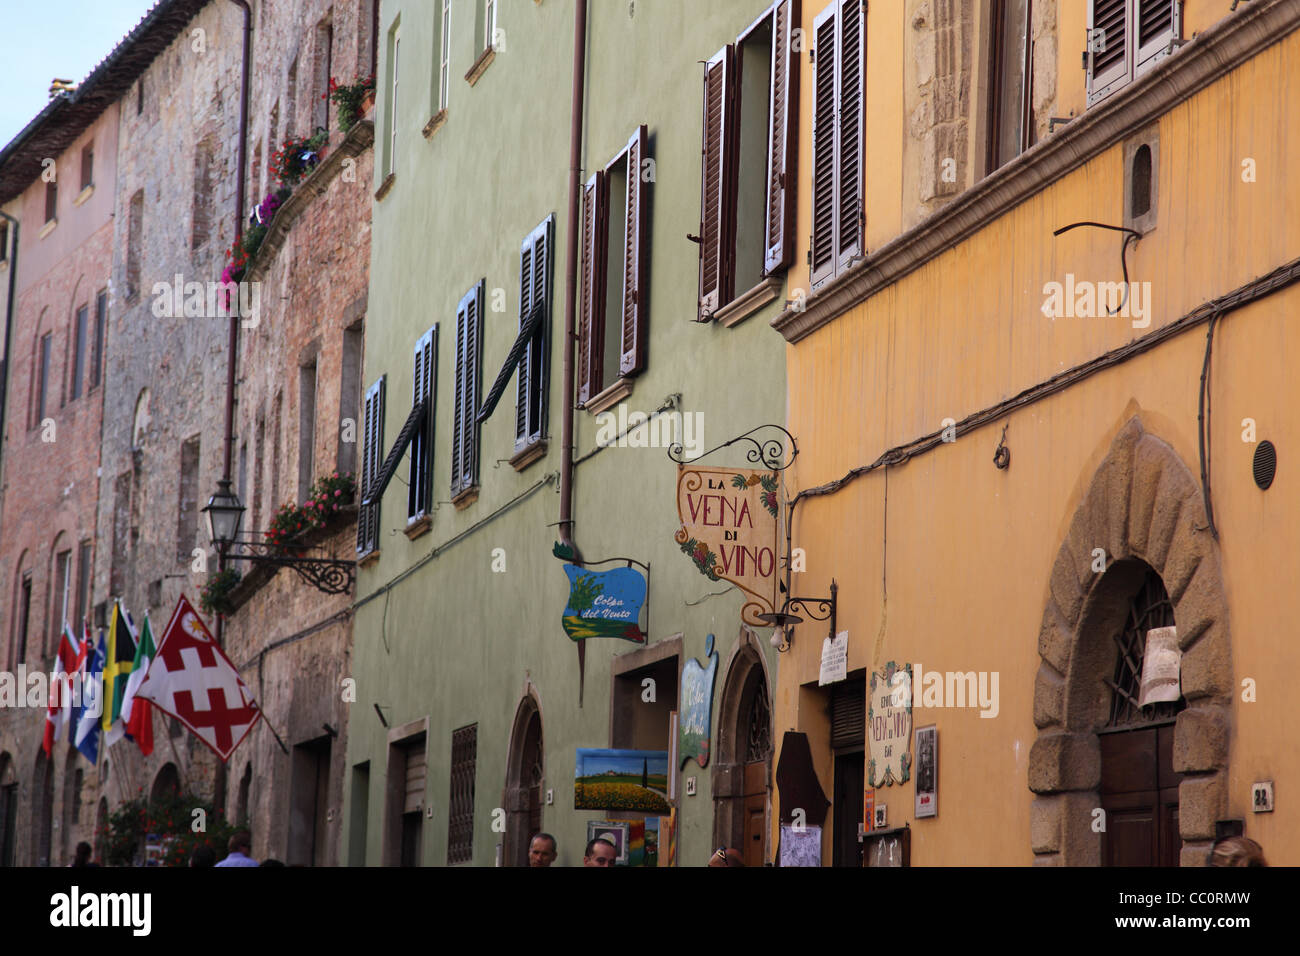 Colourful shop fronts in Volterra - Stock Image